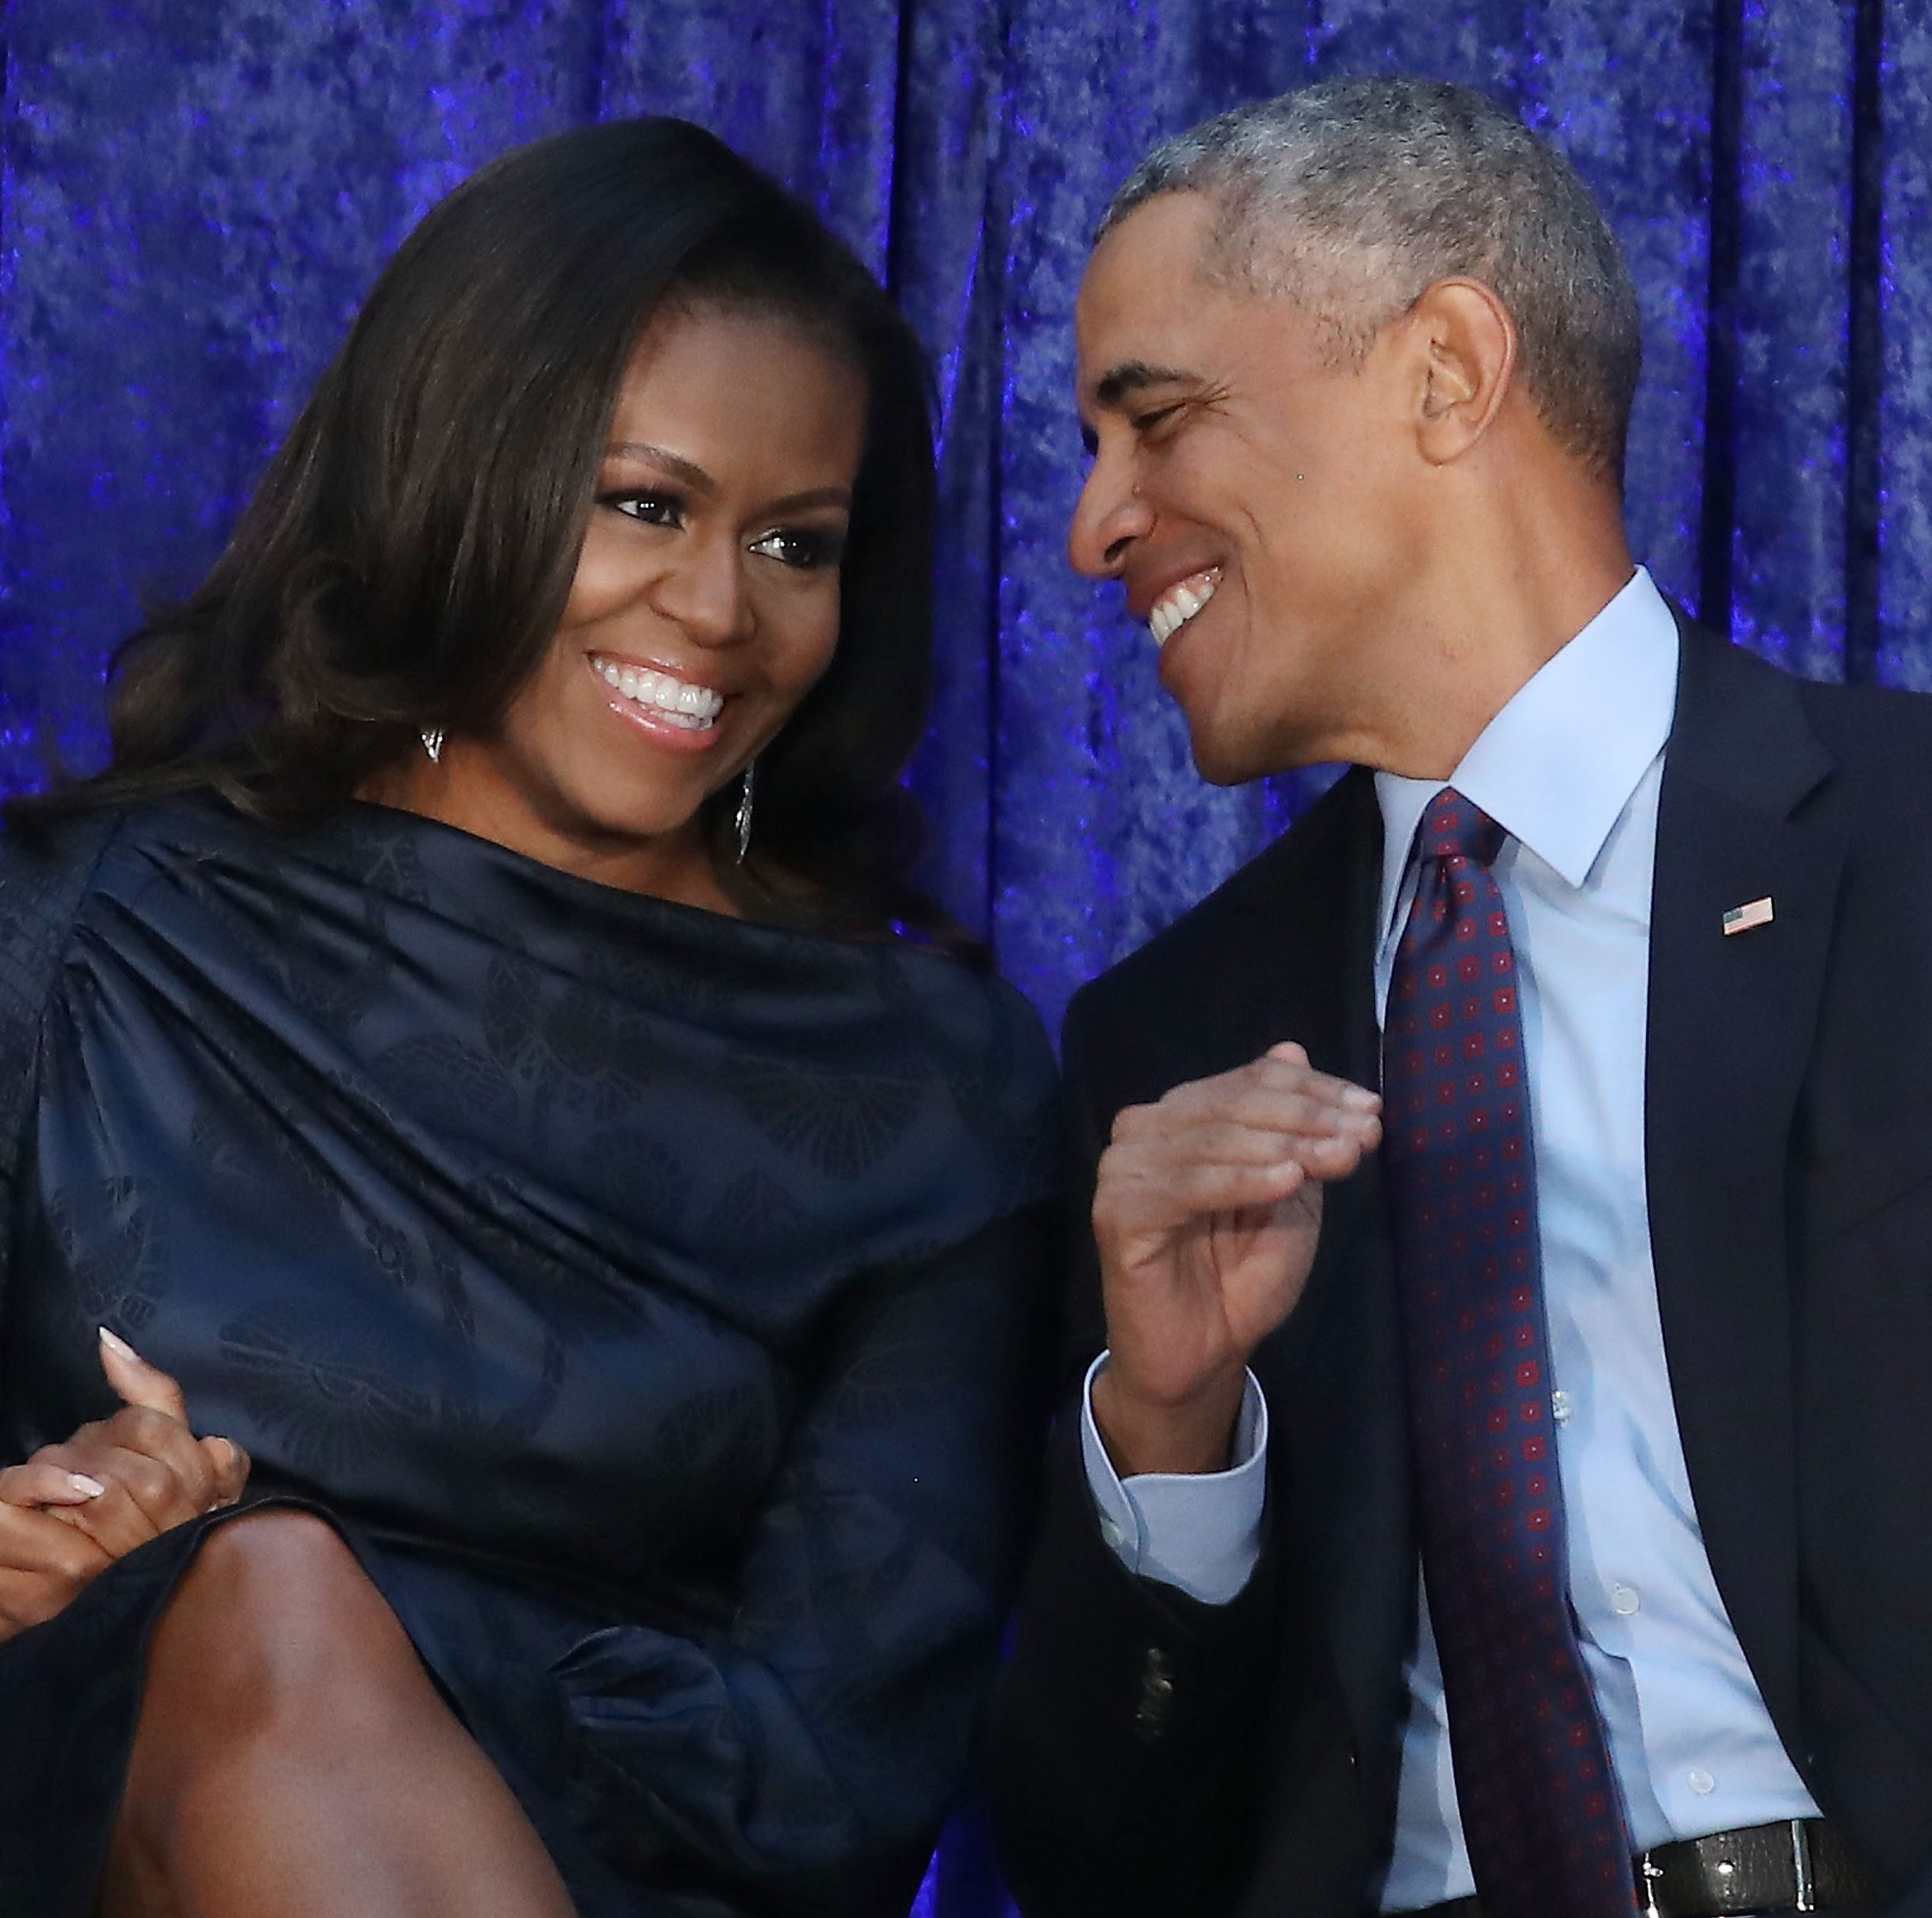 Happy anniversary: Barack and Michelle Obama celebrate 26 years with sweet tributes